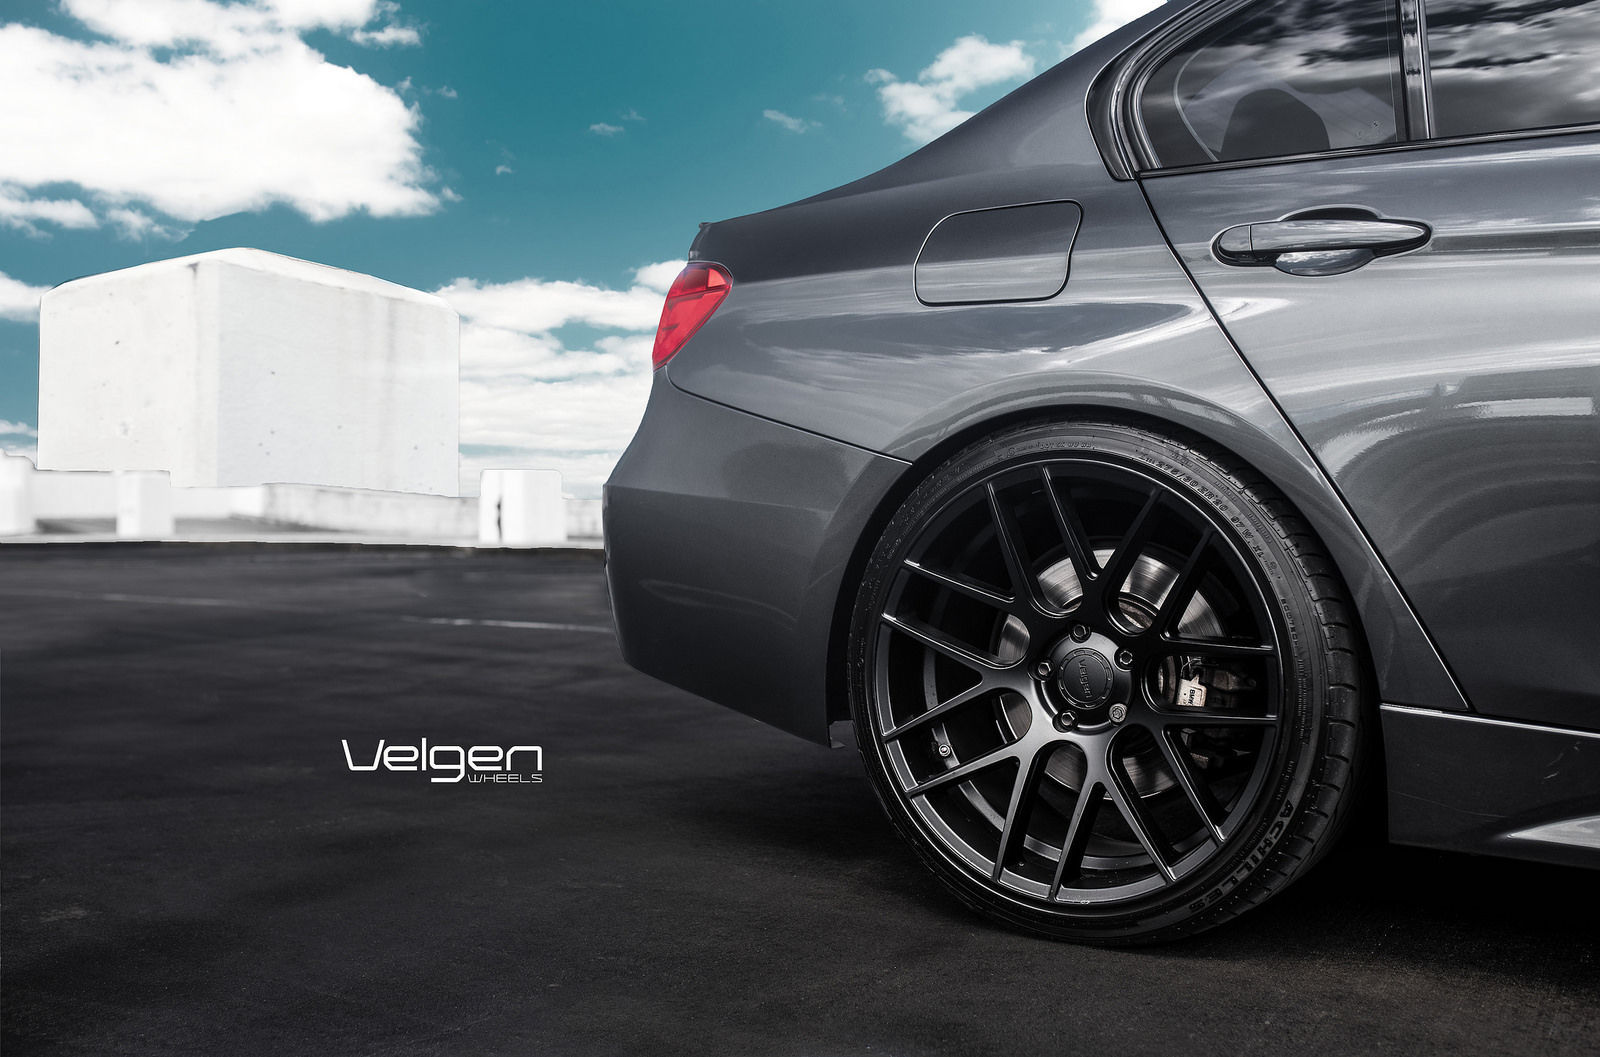 Bmw F30 On Velgen Wheels Vmb7 Rear Wheel Gap